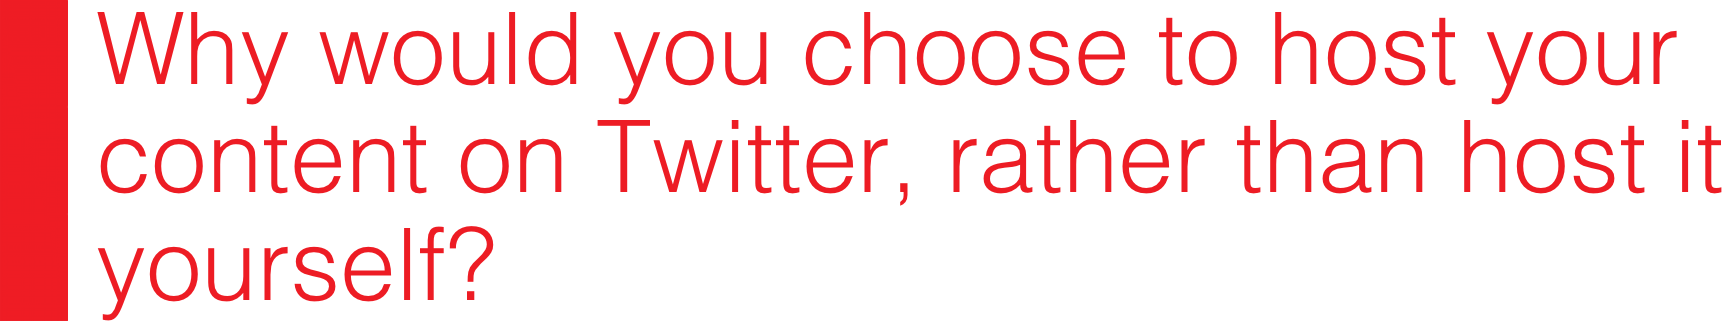 Host Content Quote PNG.png